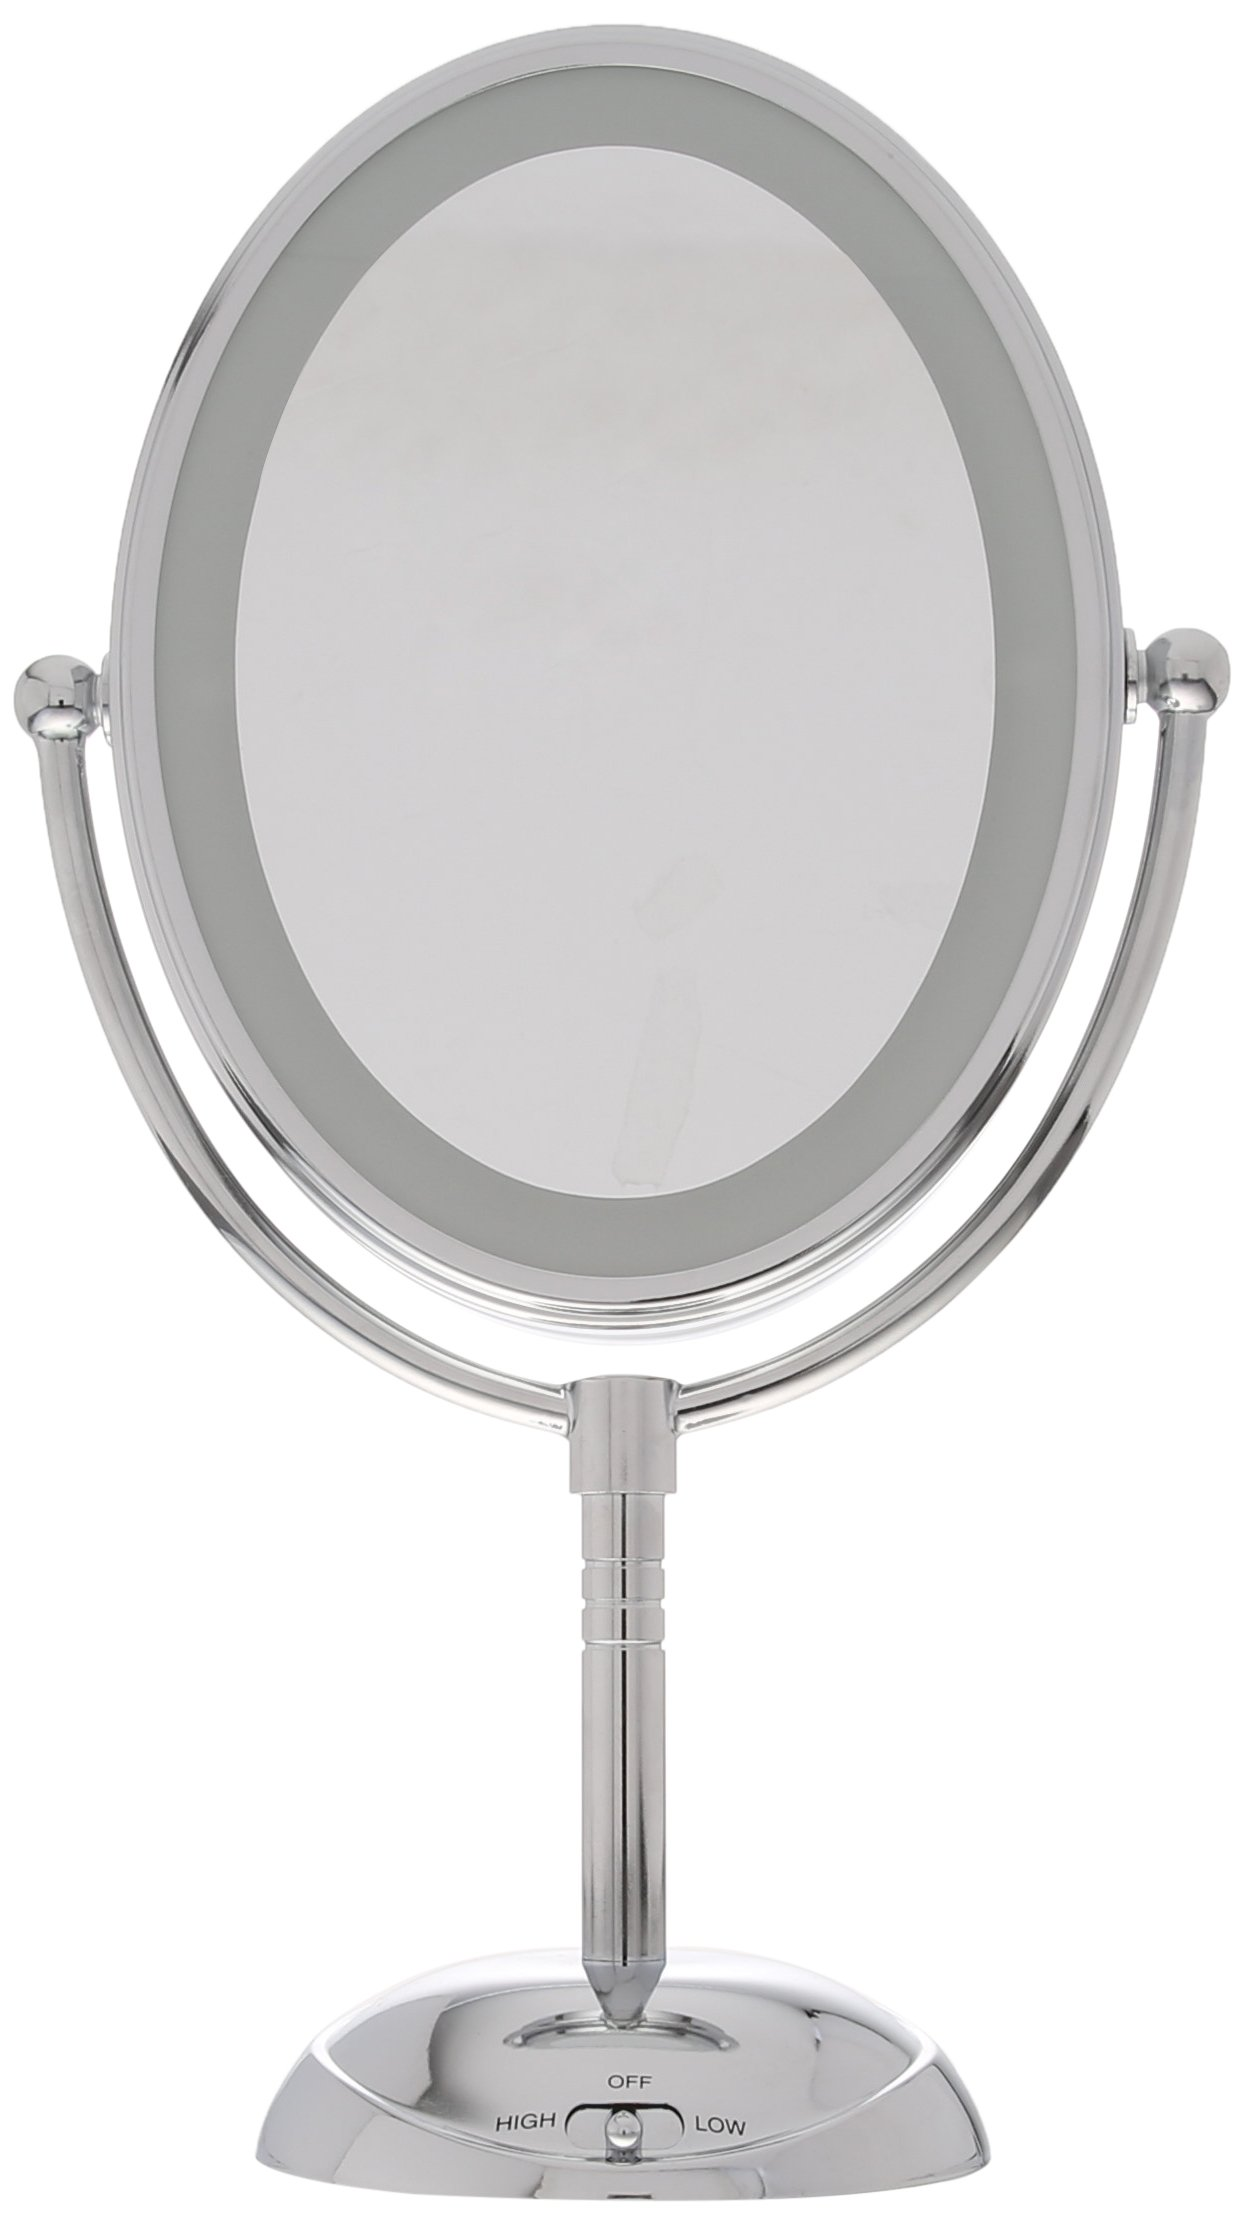 Conair Oval Shaped LED Double-Sided Lighted Makeup Mirror; 1x/7x magnification; Polished Chrome Finish by Conair (Image #3)